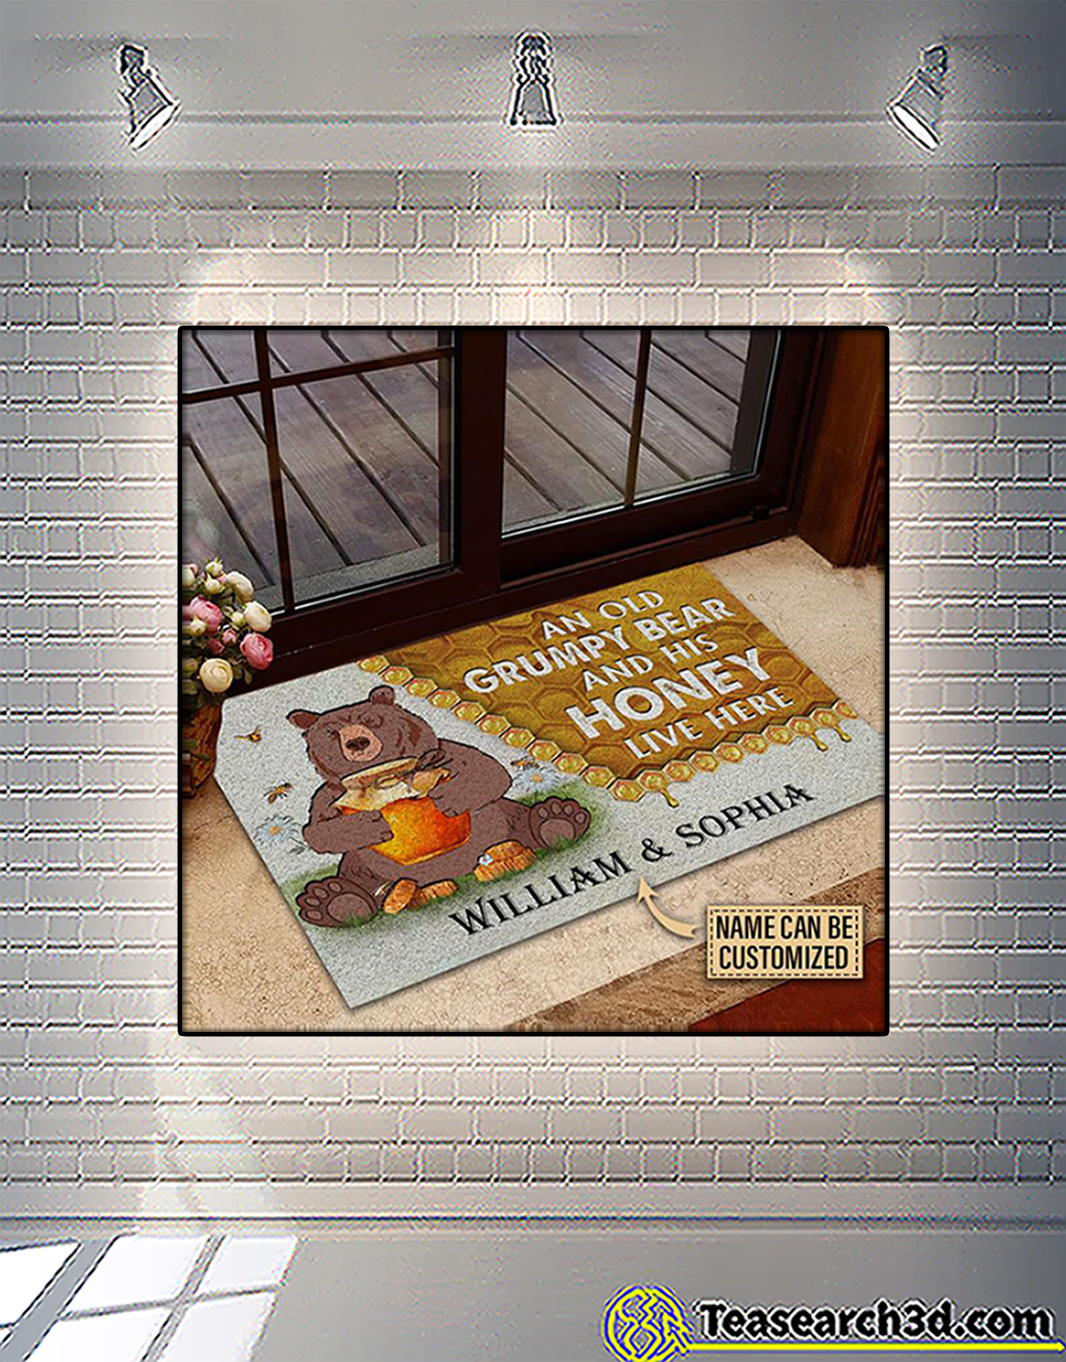 Personalized custom name an old grumpy bear and his honey live here doormat